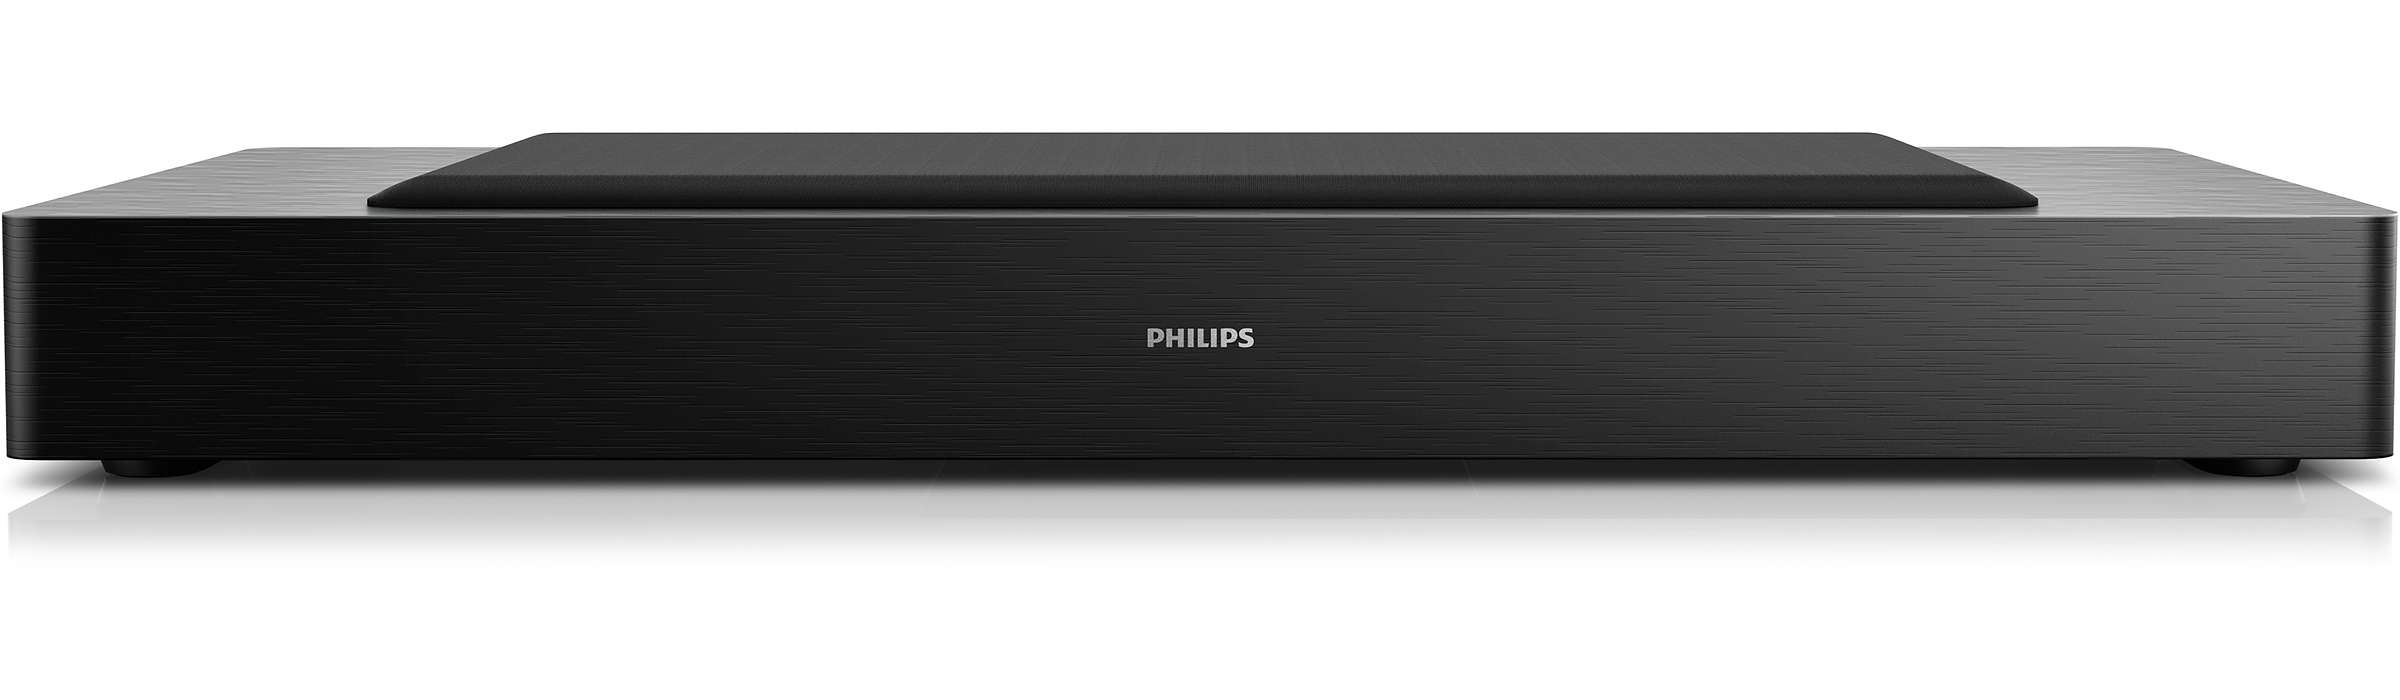 Intensifique os graves do seu televisor Philips